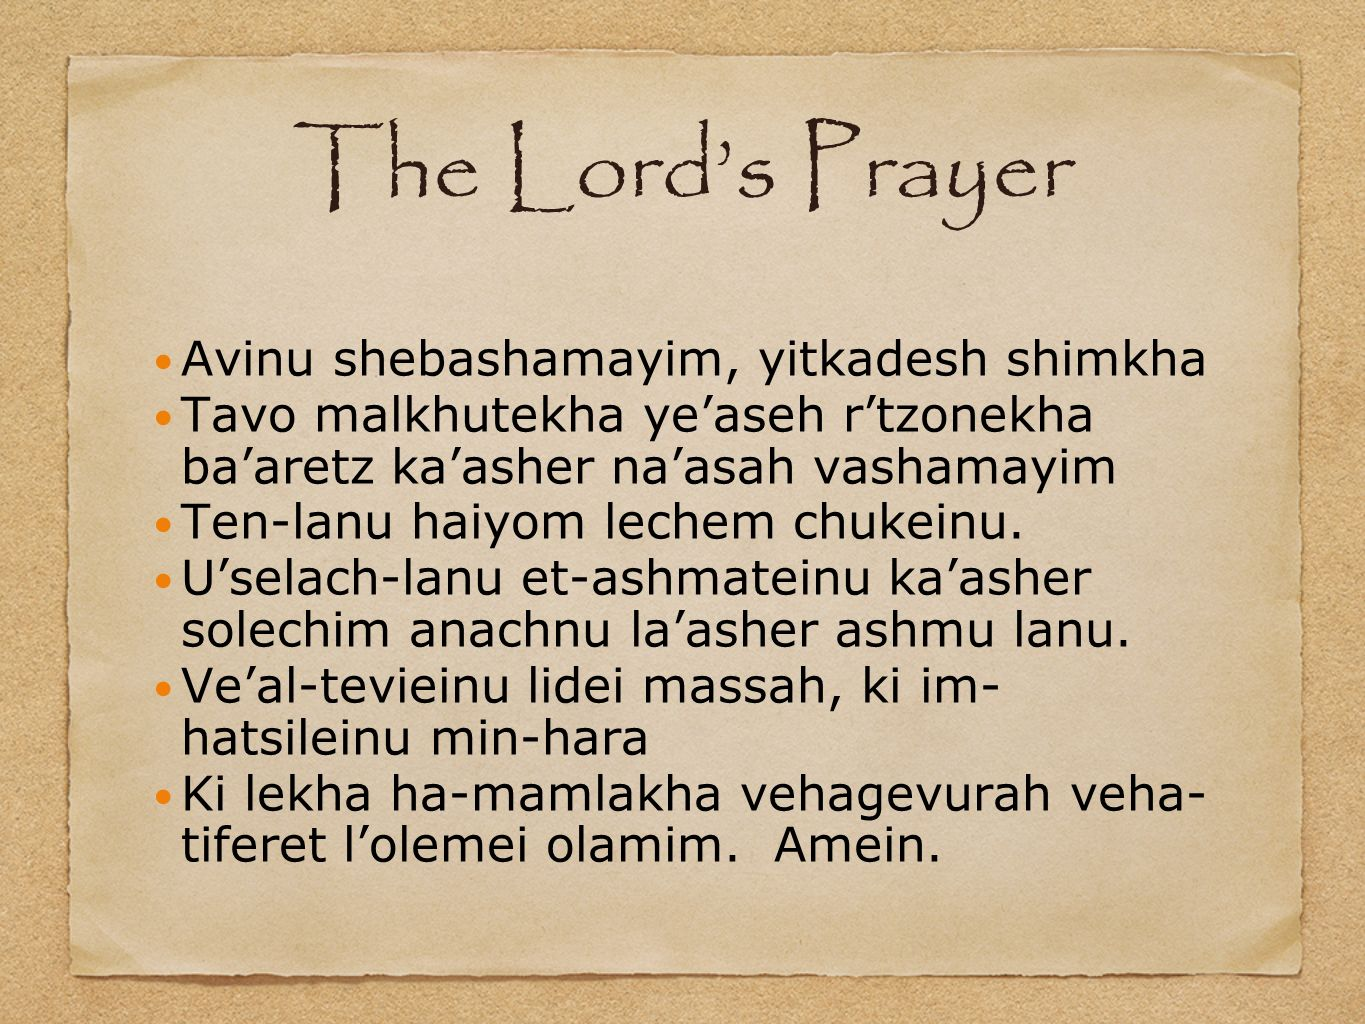 The Lord's Prayer Avinu shebashamayim, yitkadesh shimkha